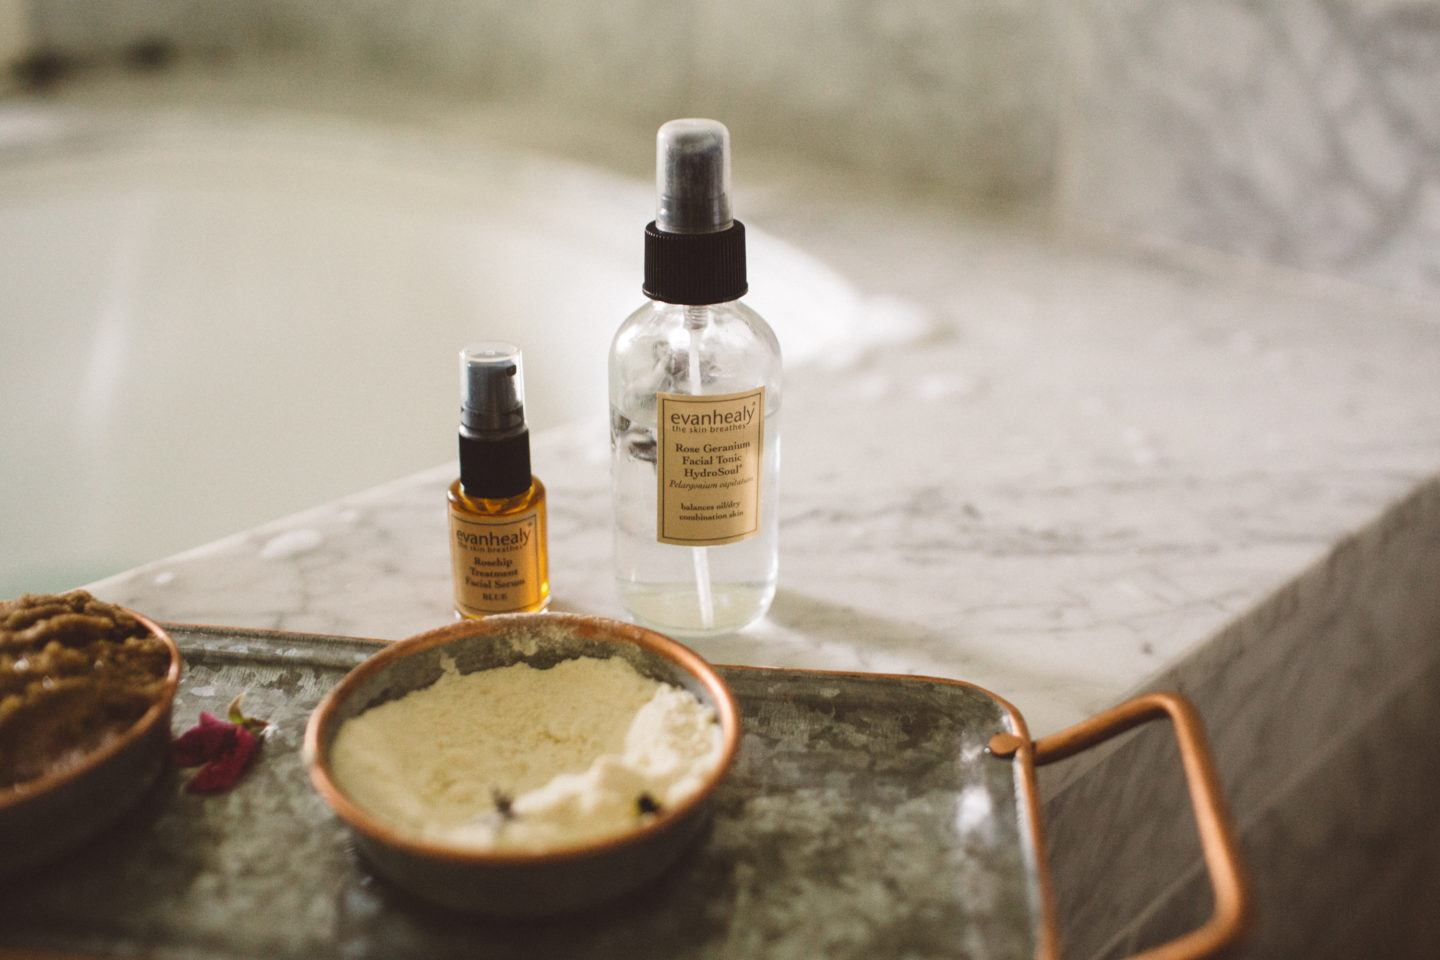 evanhealy Is The Organic Skincare Brand You Need